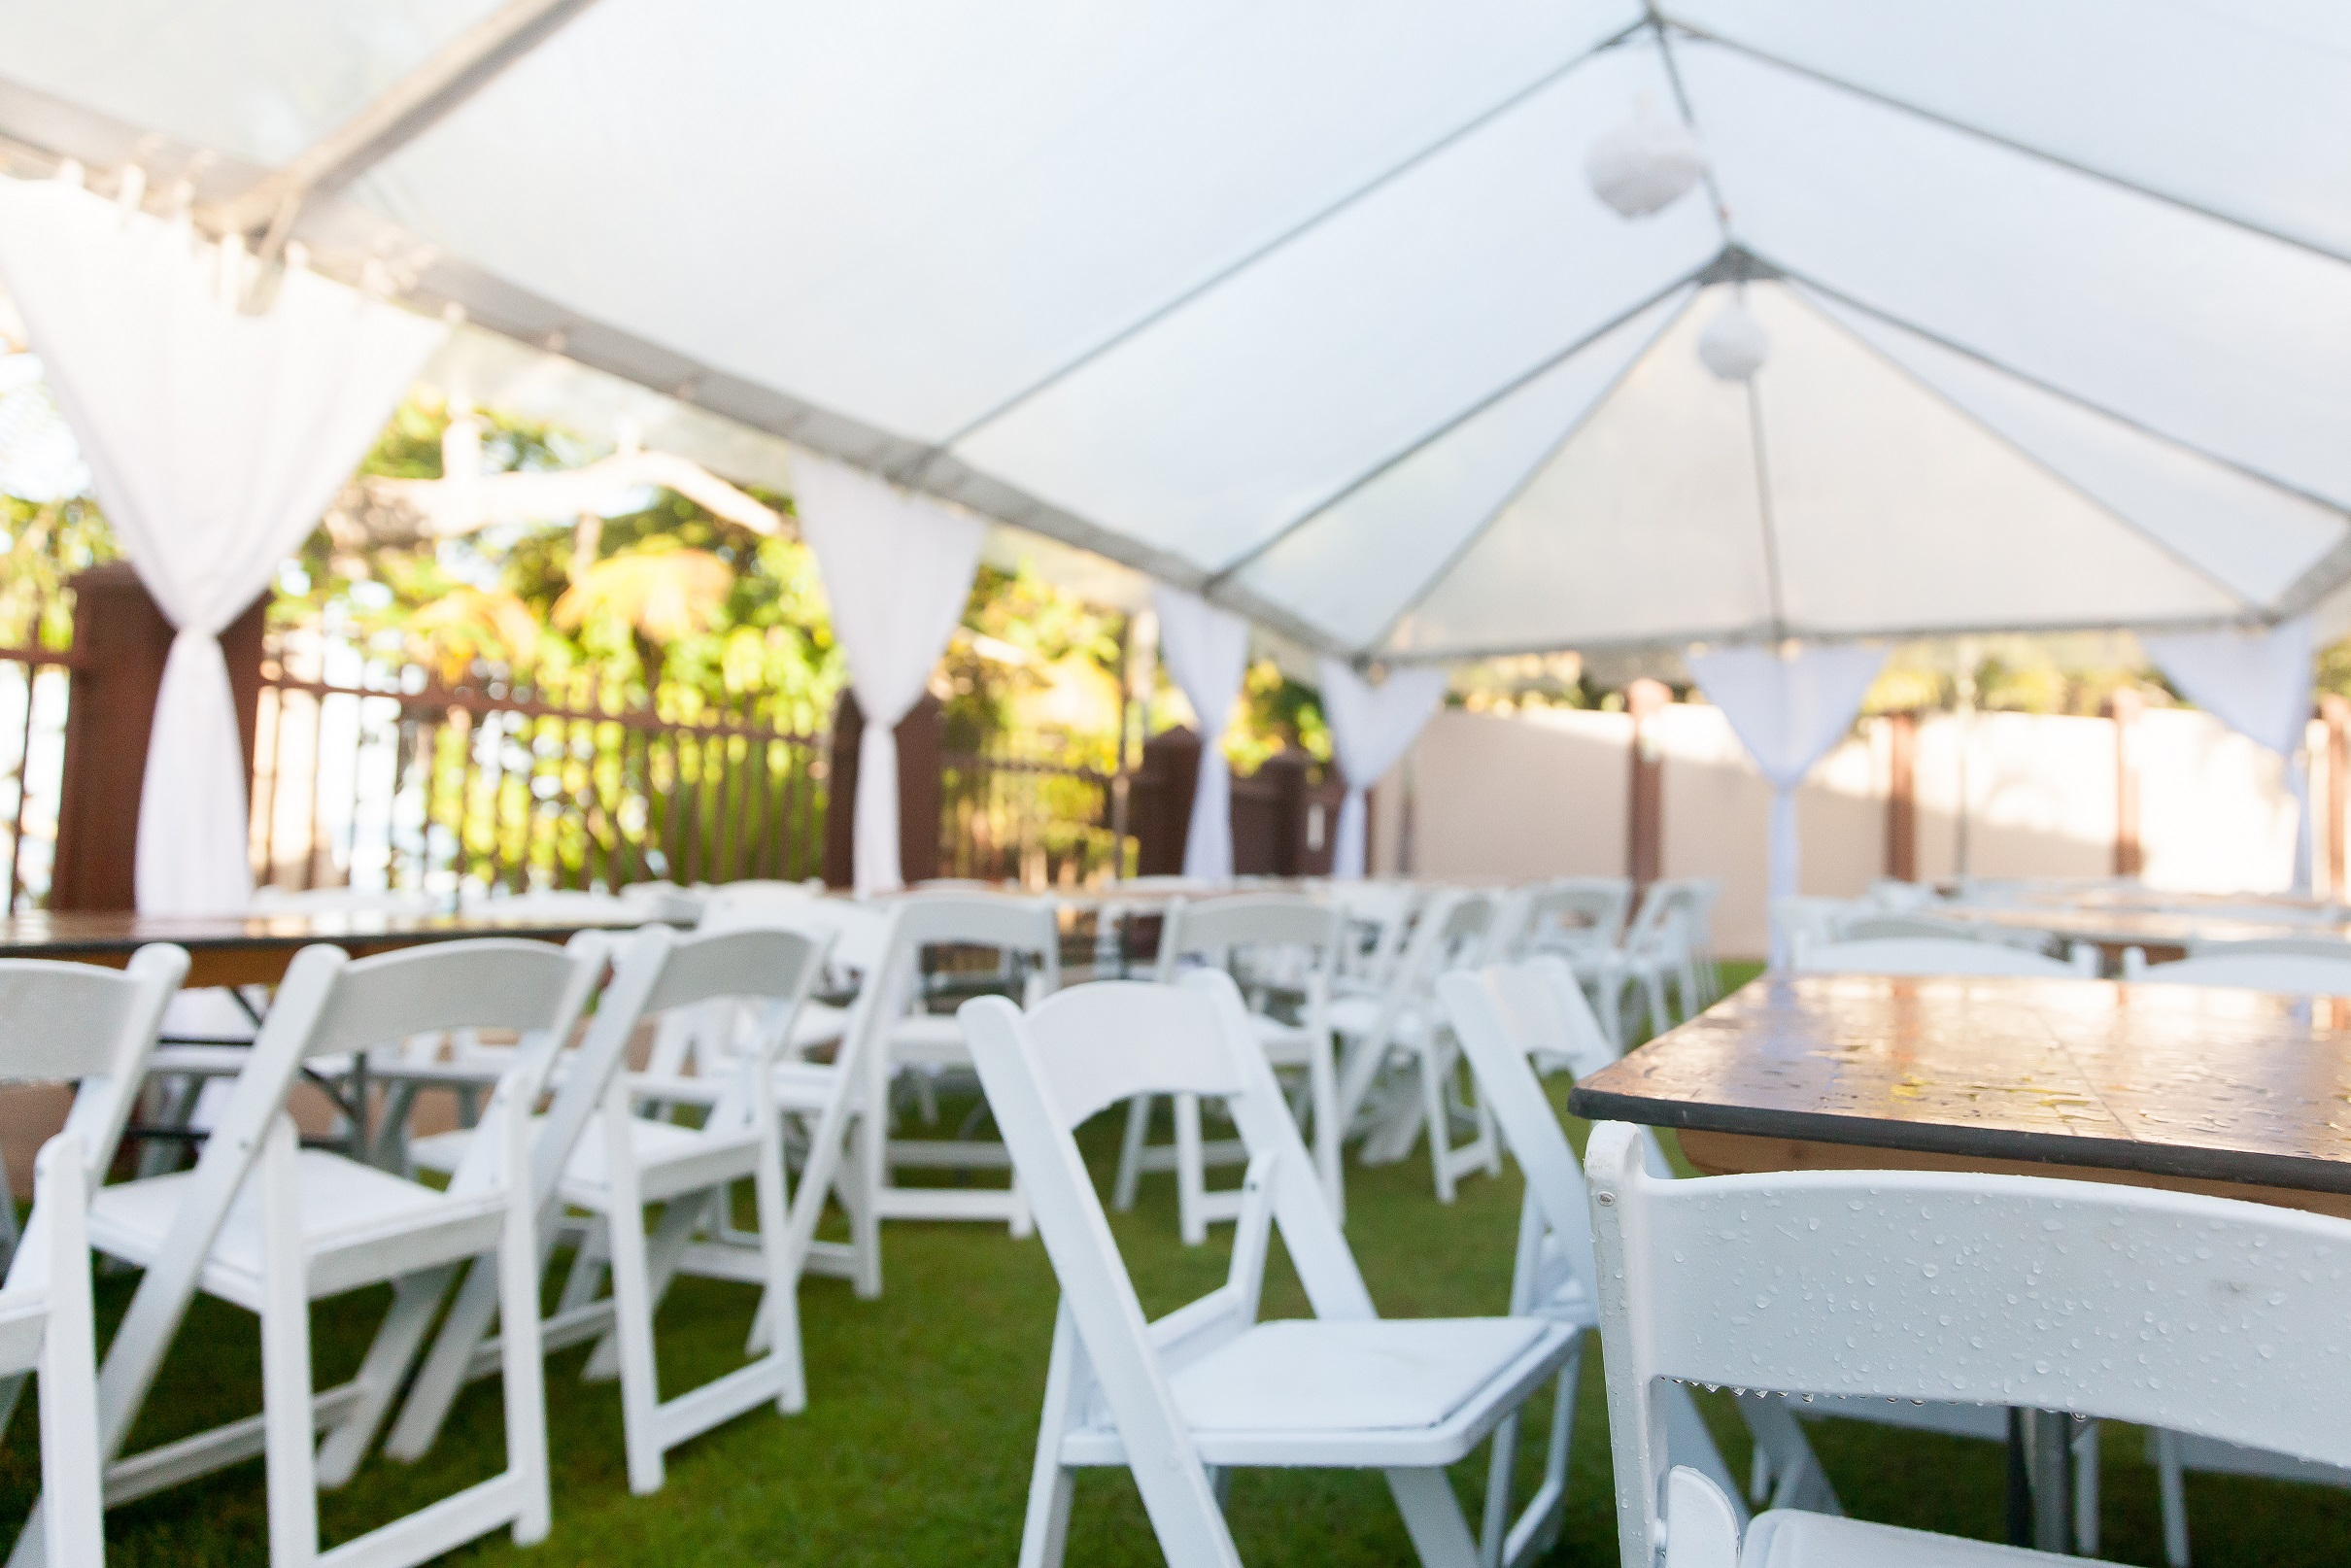 The Wedding Tent 4 Things You Need To Know